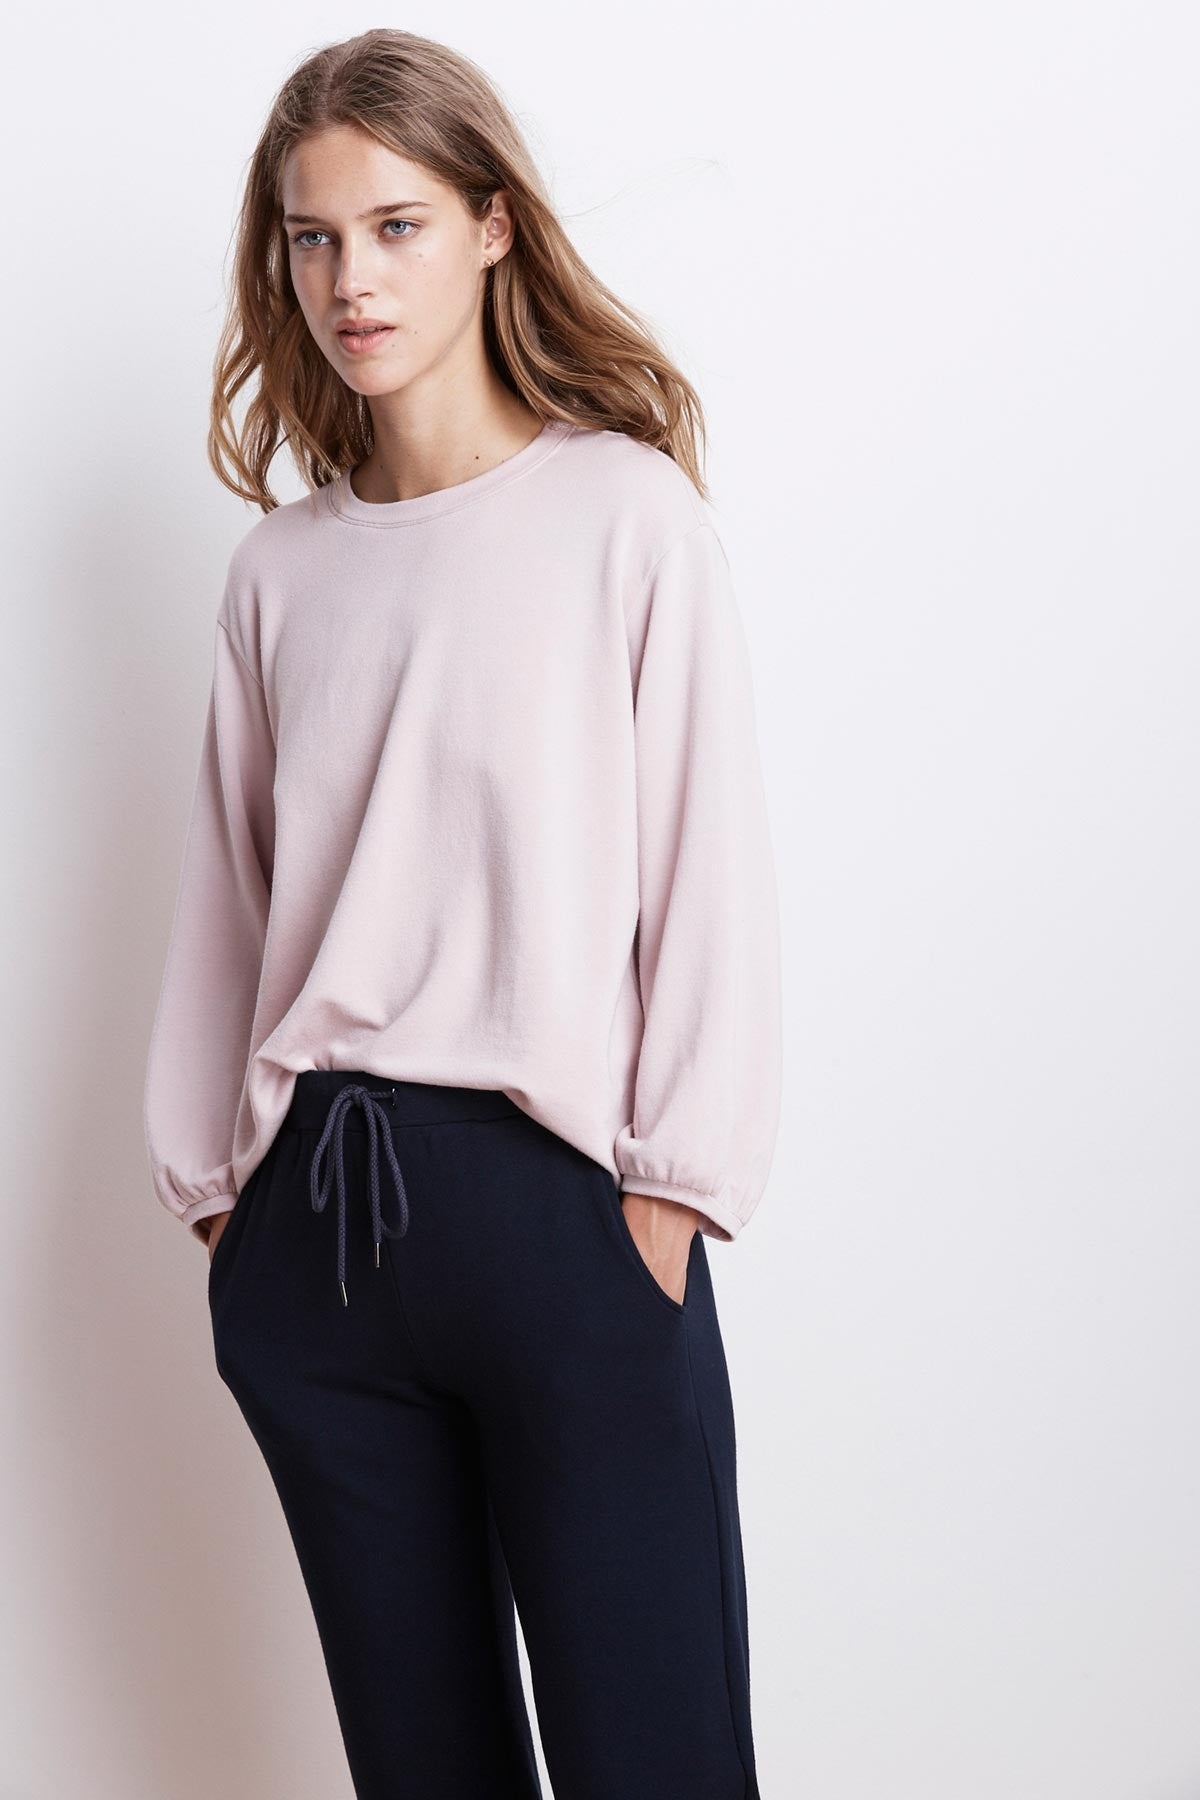 EMBER FLEECE CREW NECK TOP